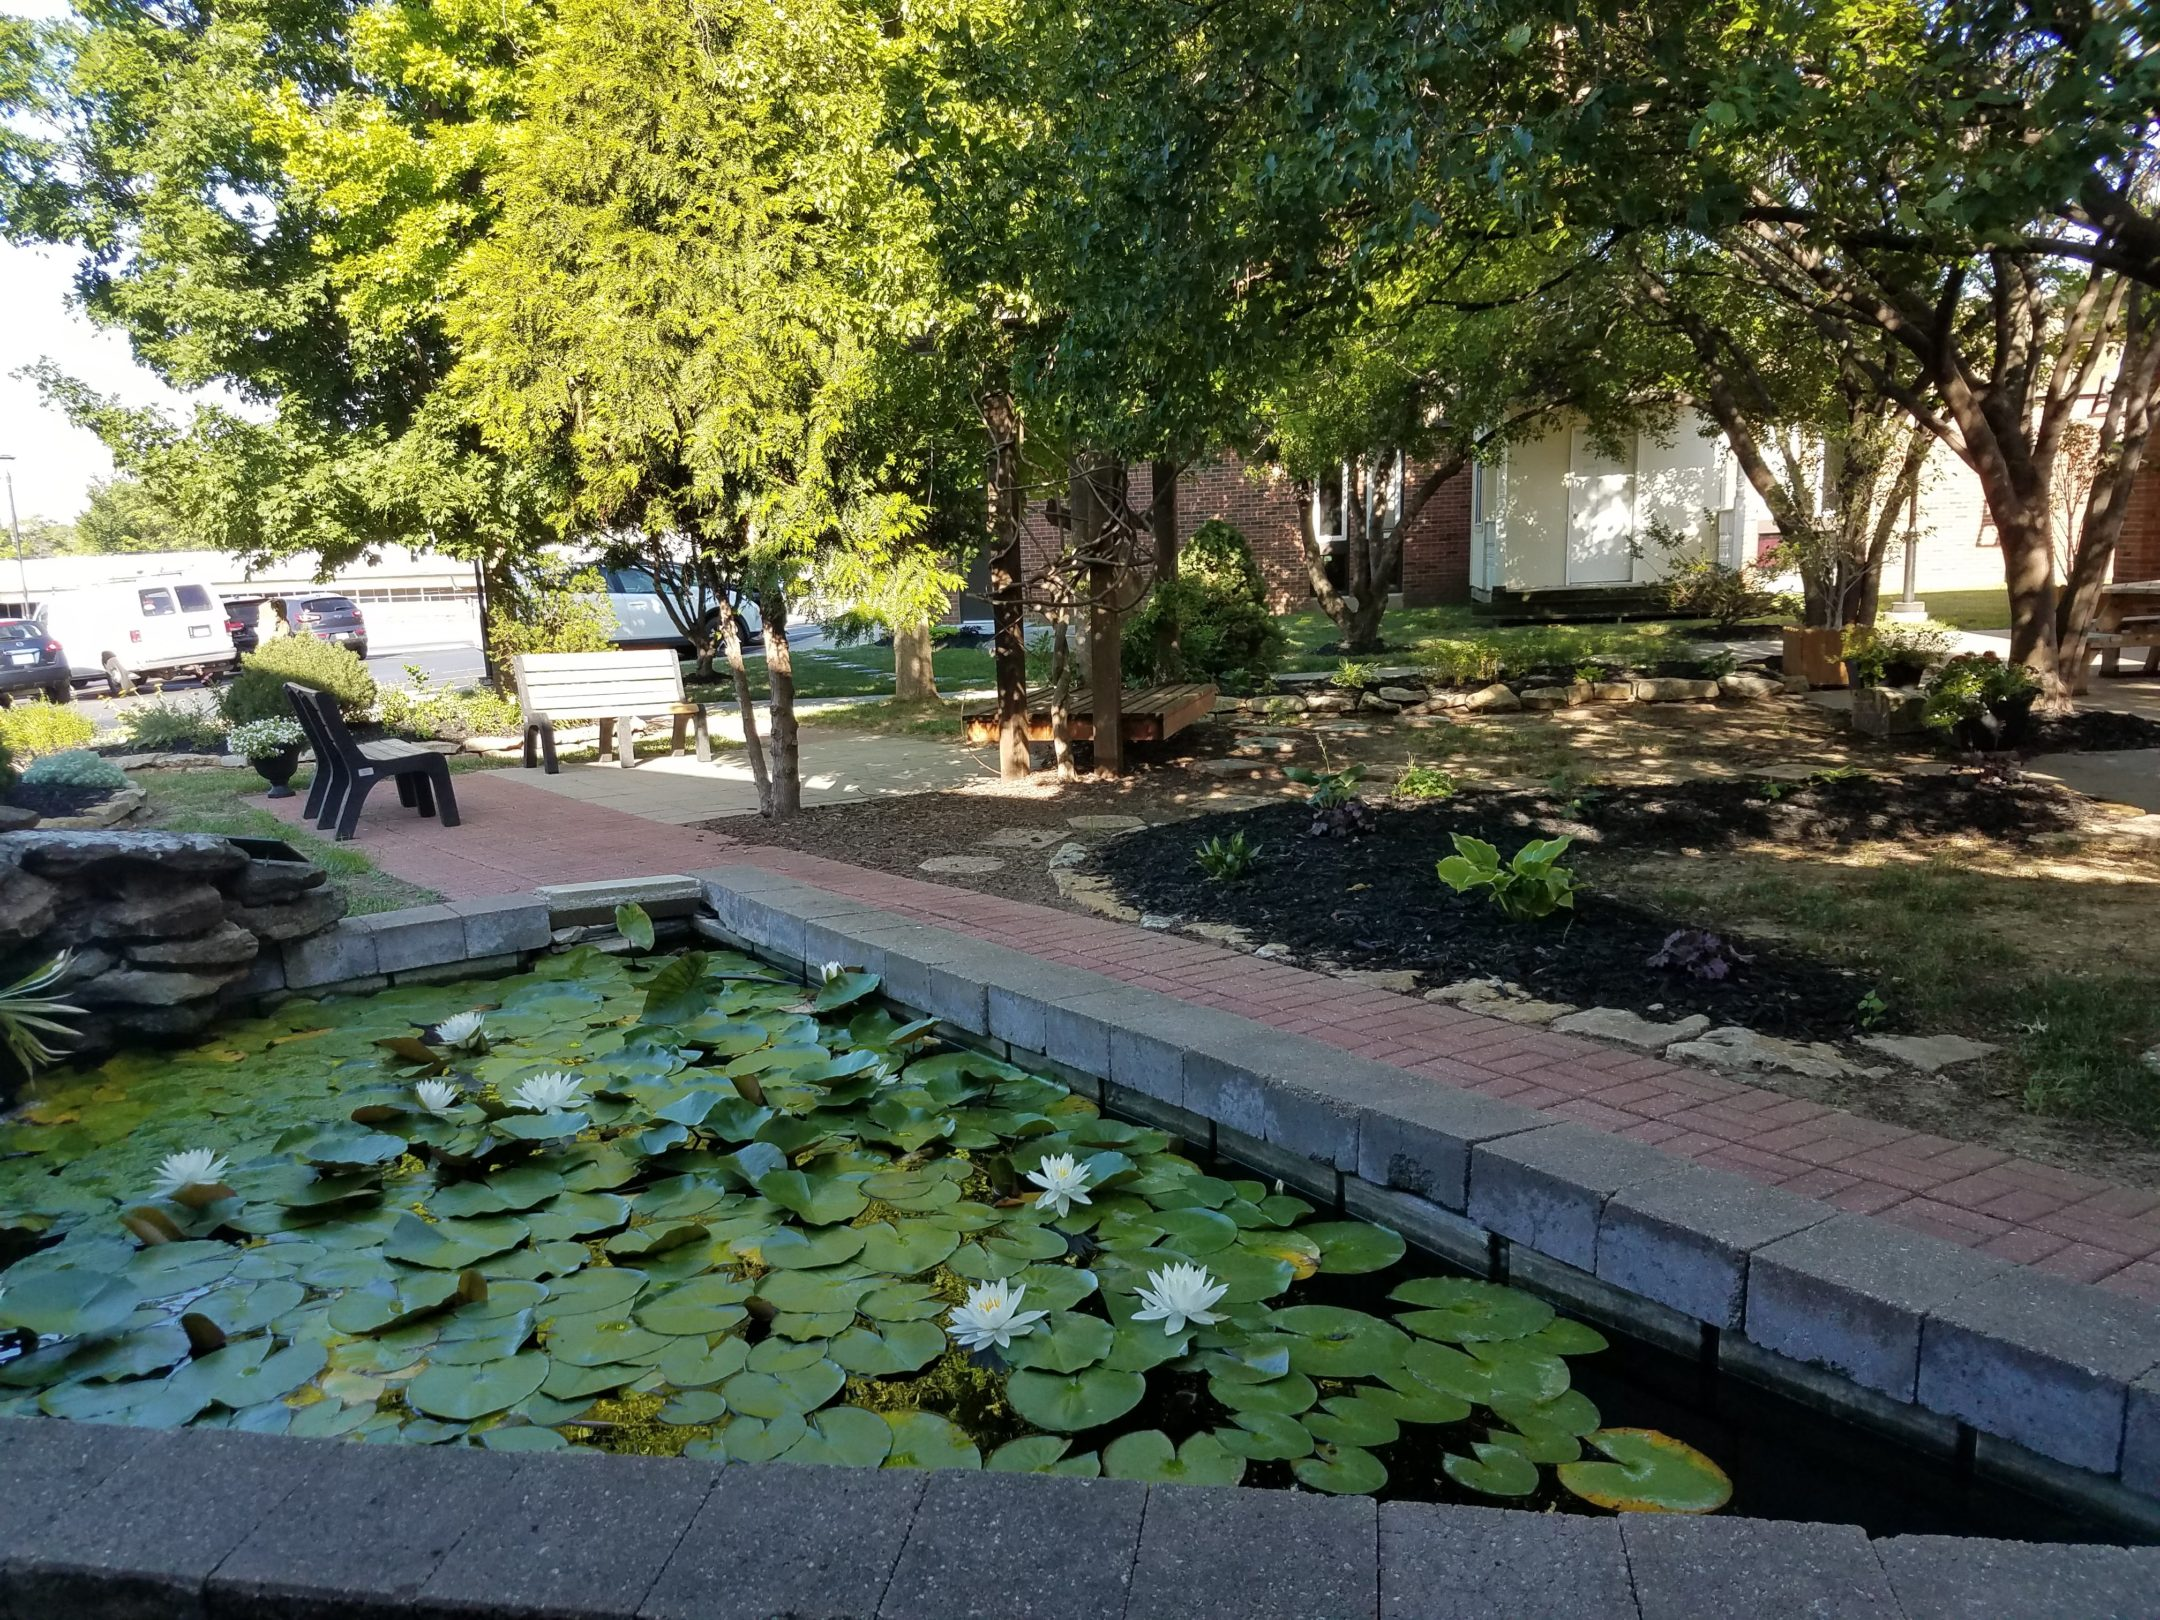 A triangular water pond created using red brick. The water is covered with green lily pads and a few white flowers in bloom. In the backgroudn trees giving shade to the grass, plants, benches and sidewalks.